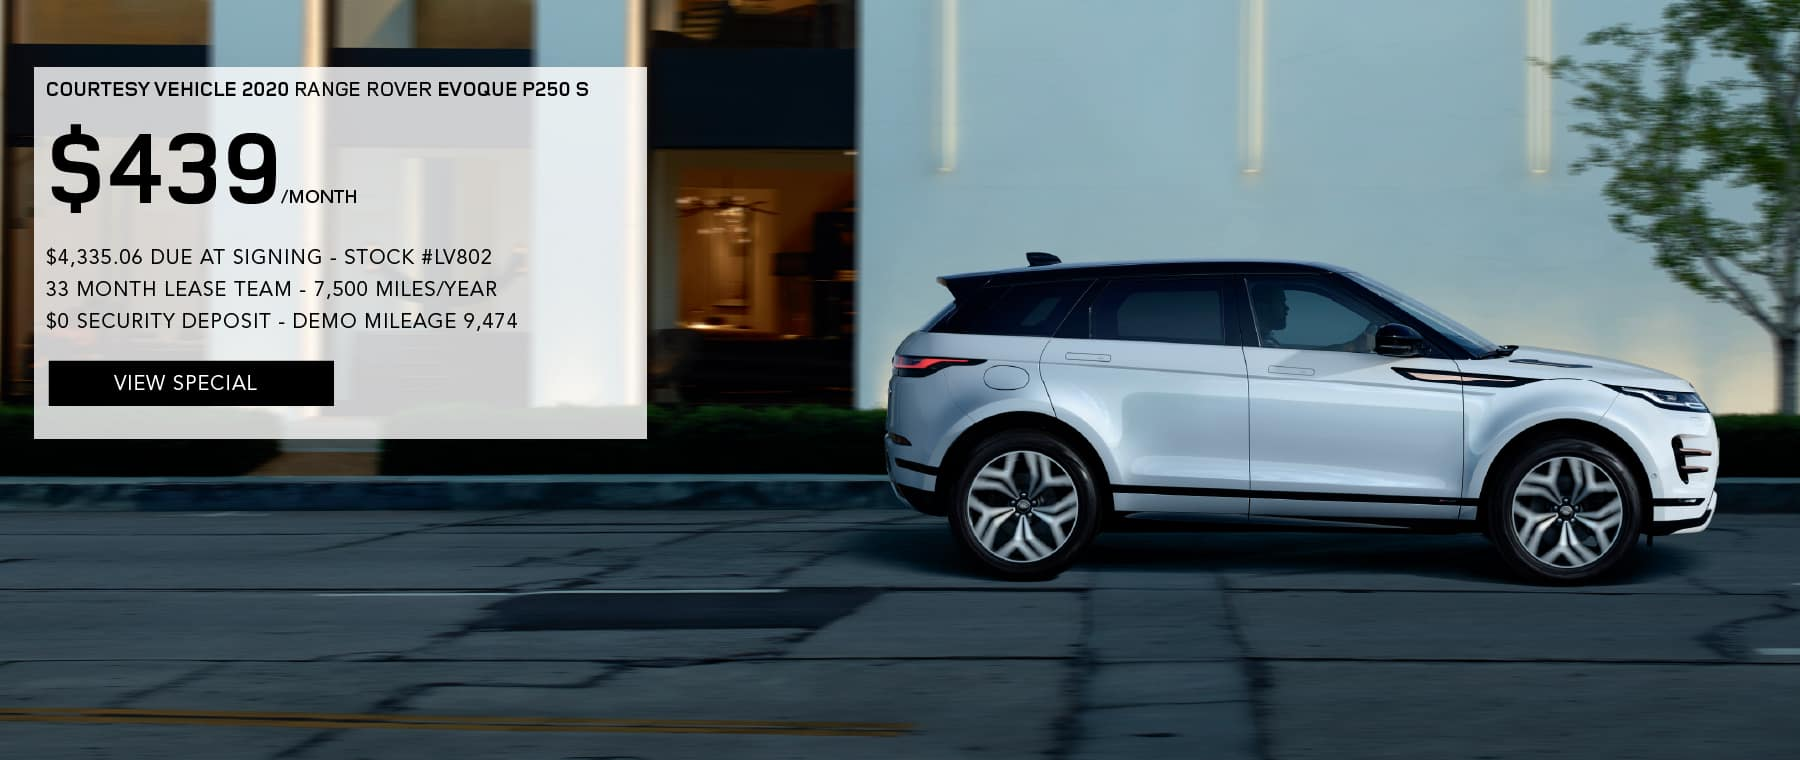 COURTESY VEHICLE 2020 RANGE ROVER EVOQUE P250 S. $439 PER MONTH FOR 33 MONTHS. $4,335.06 DUE AT SIGNING. STOCK #LV802. 7,500 MILES/YEAR. $0 SECURITY DEPOSIT. VIEW SPECIAL. SILVER RANGE ROVER EVOQUE DRIVING THROUGH CITY.